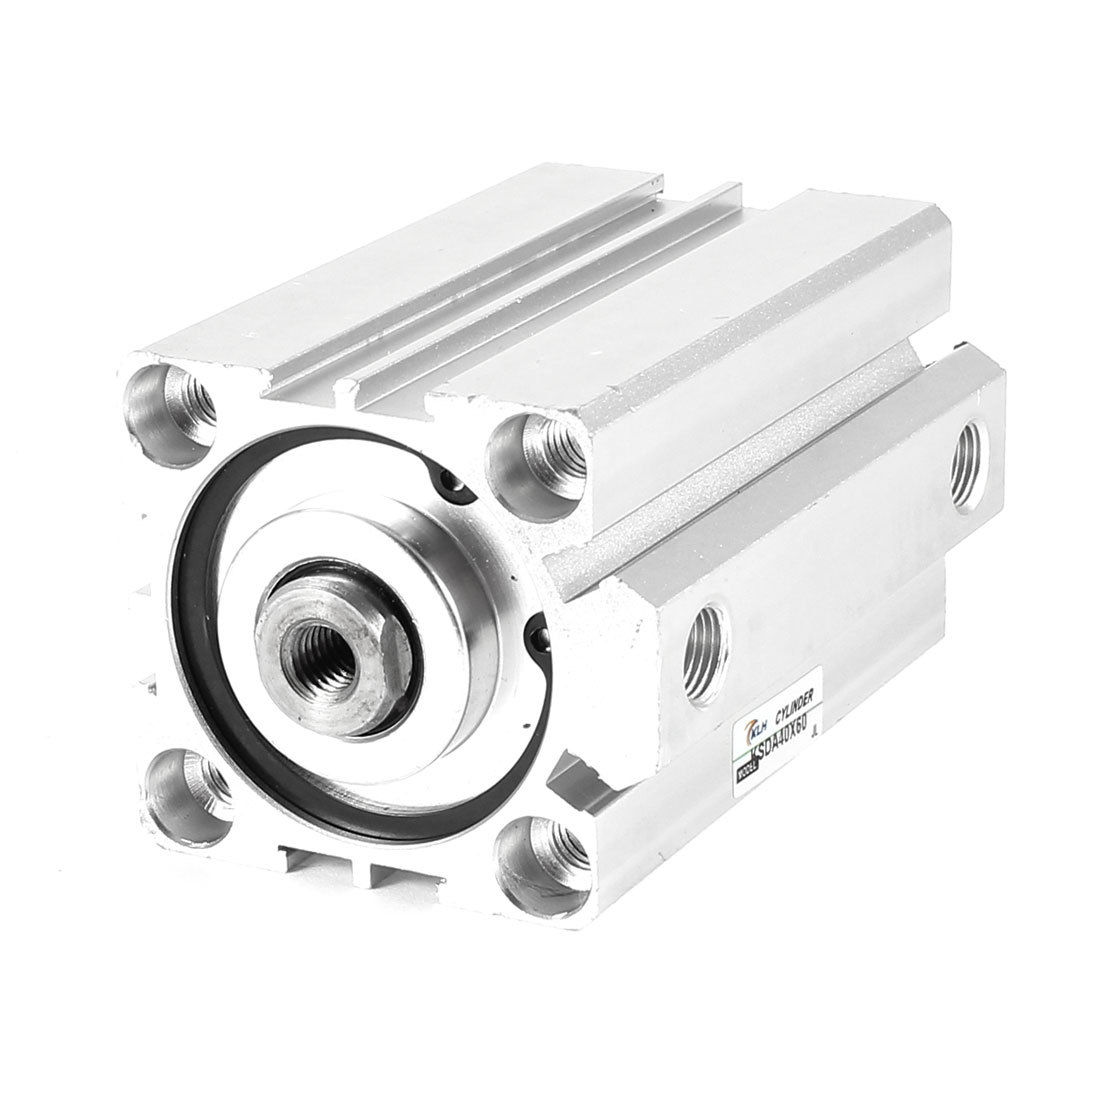 1 Pcs 50mm Bore 35mm Stroke Stainless steel Pneumatic Air Cylinder SDA50-35